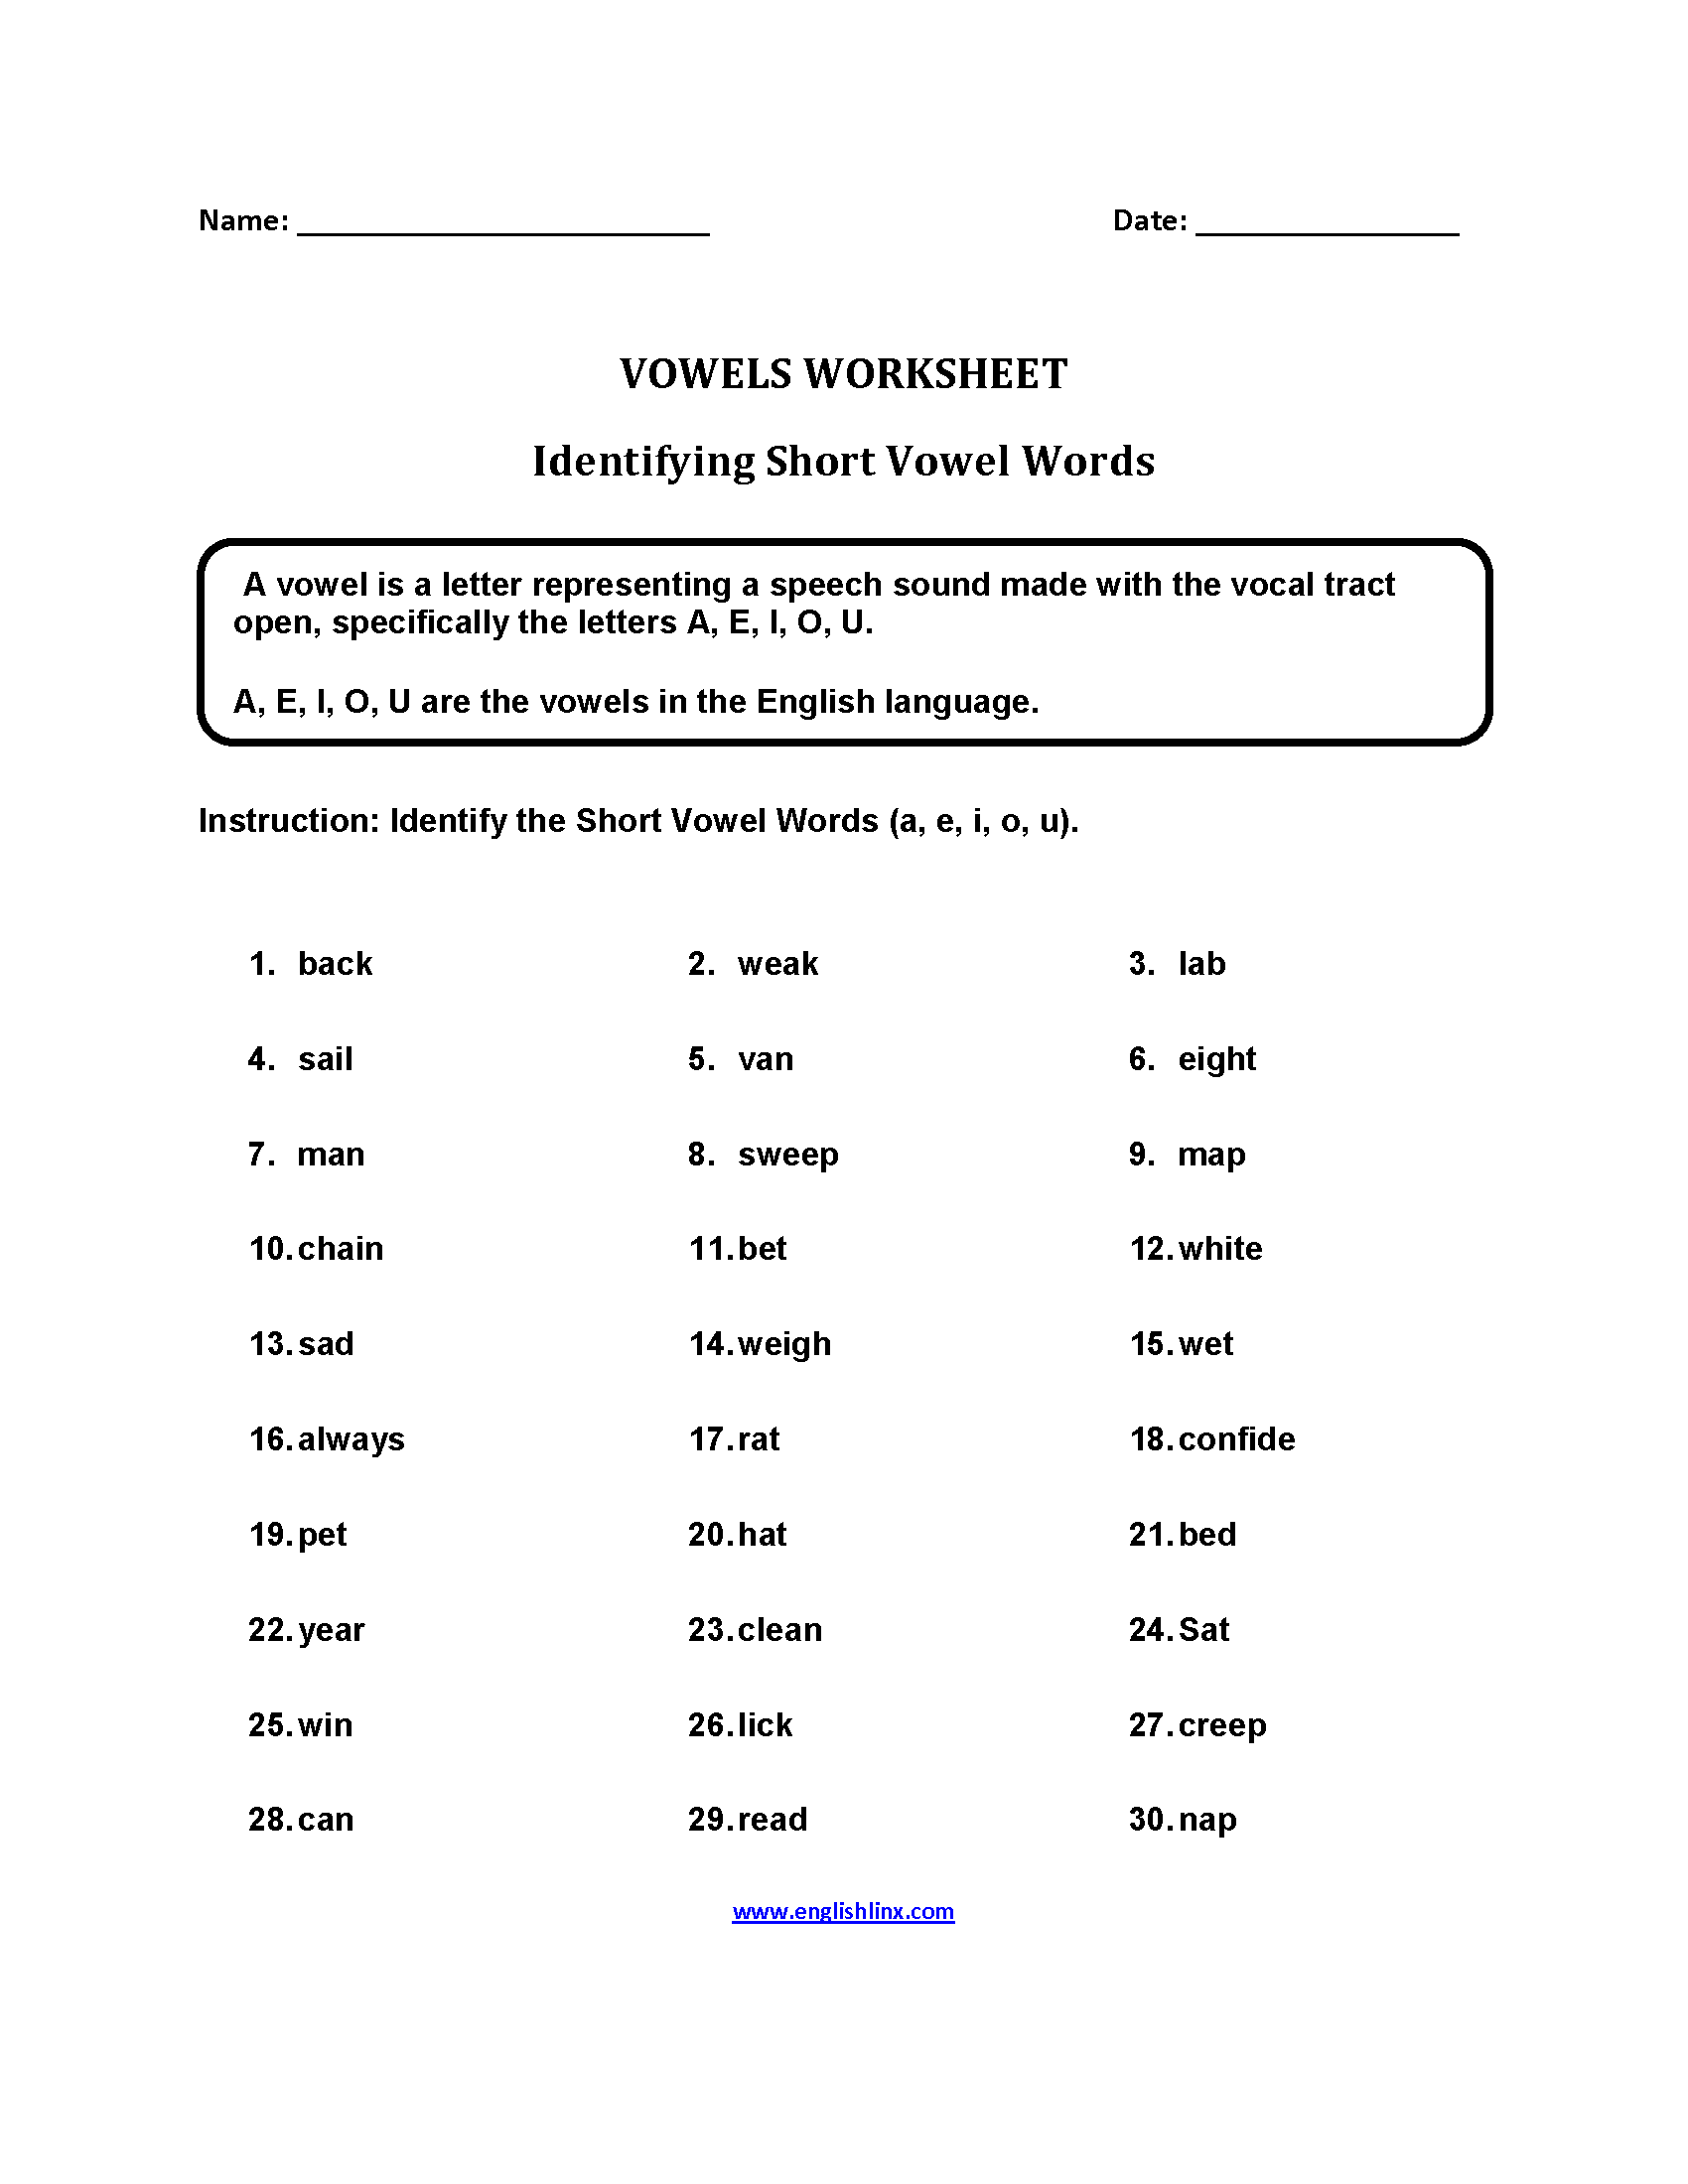 Vowels Worksheets